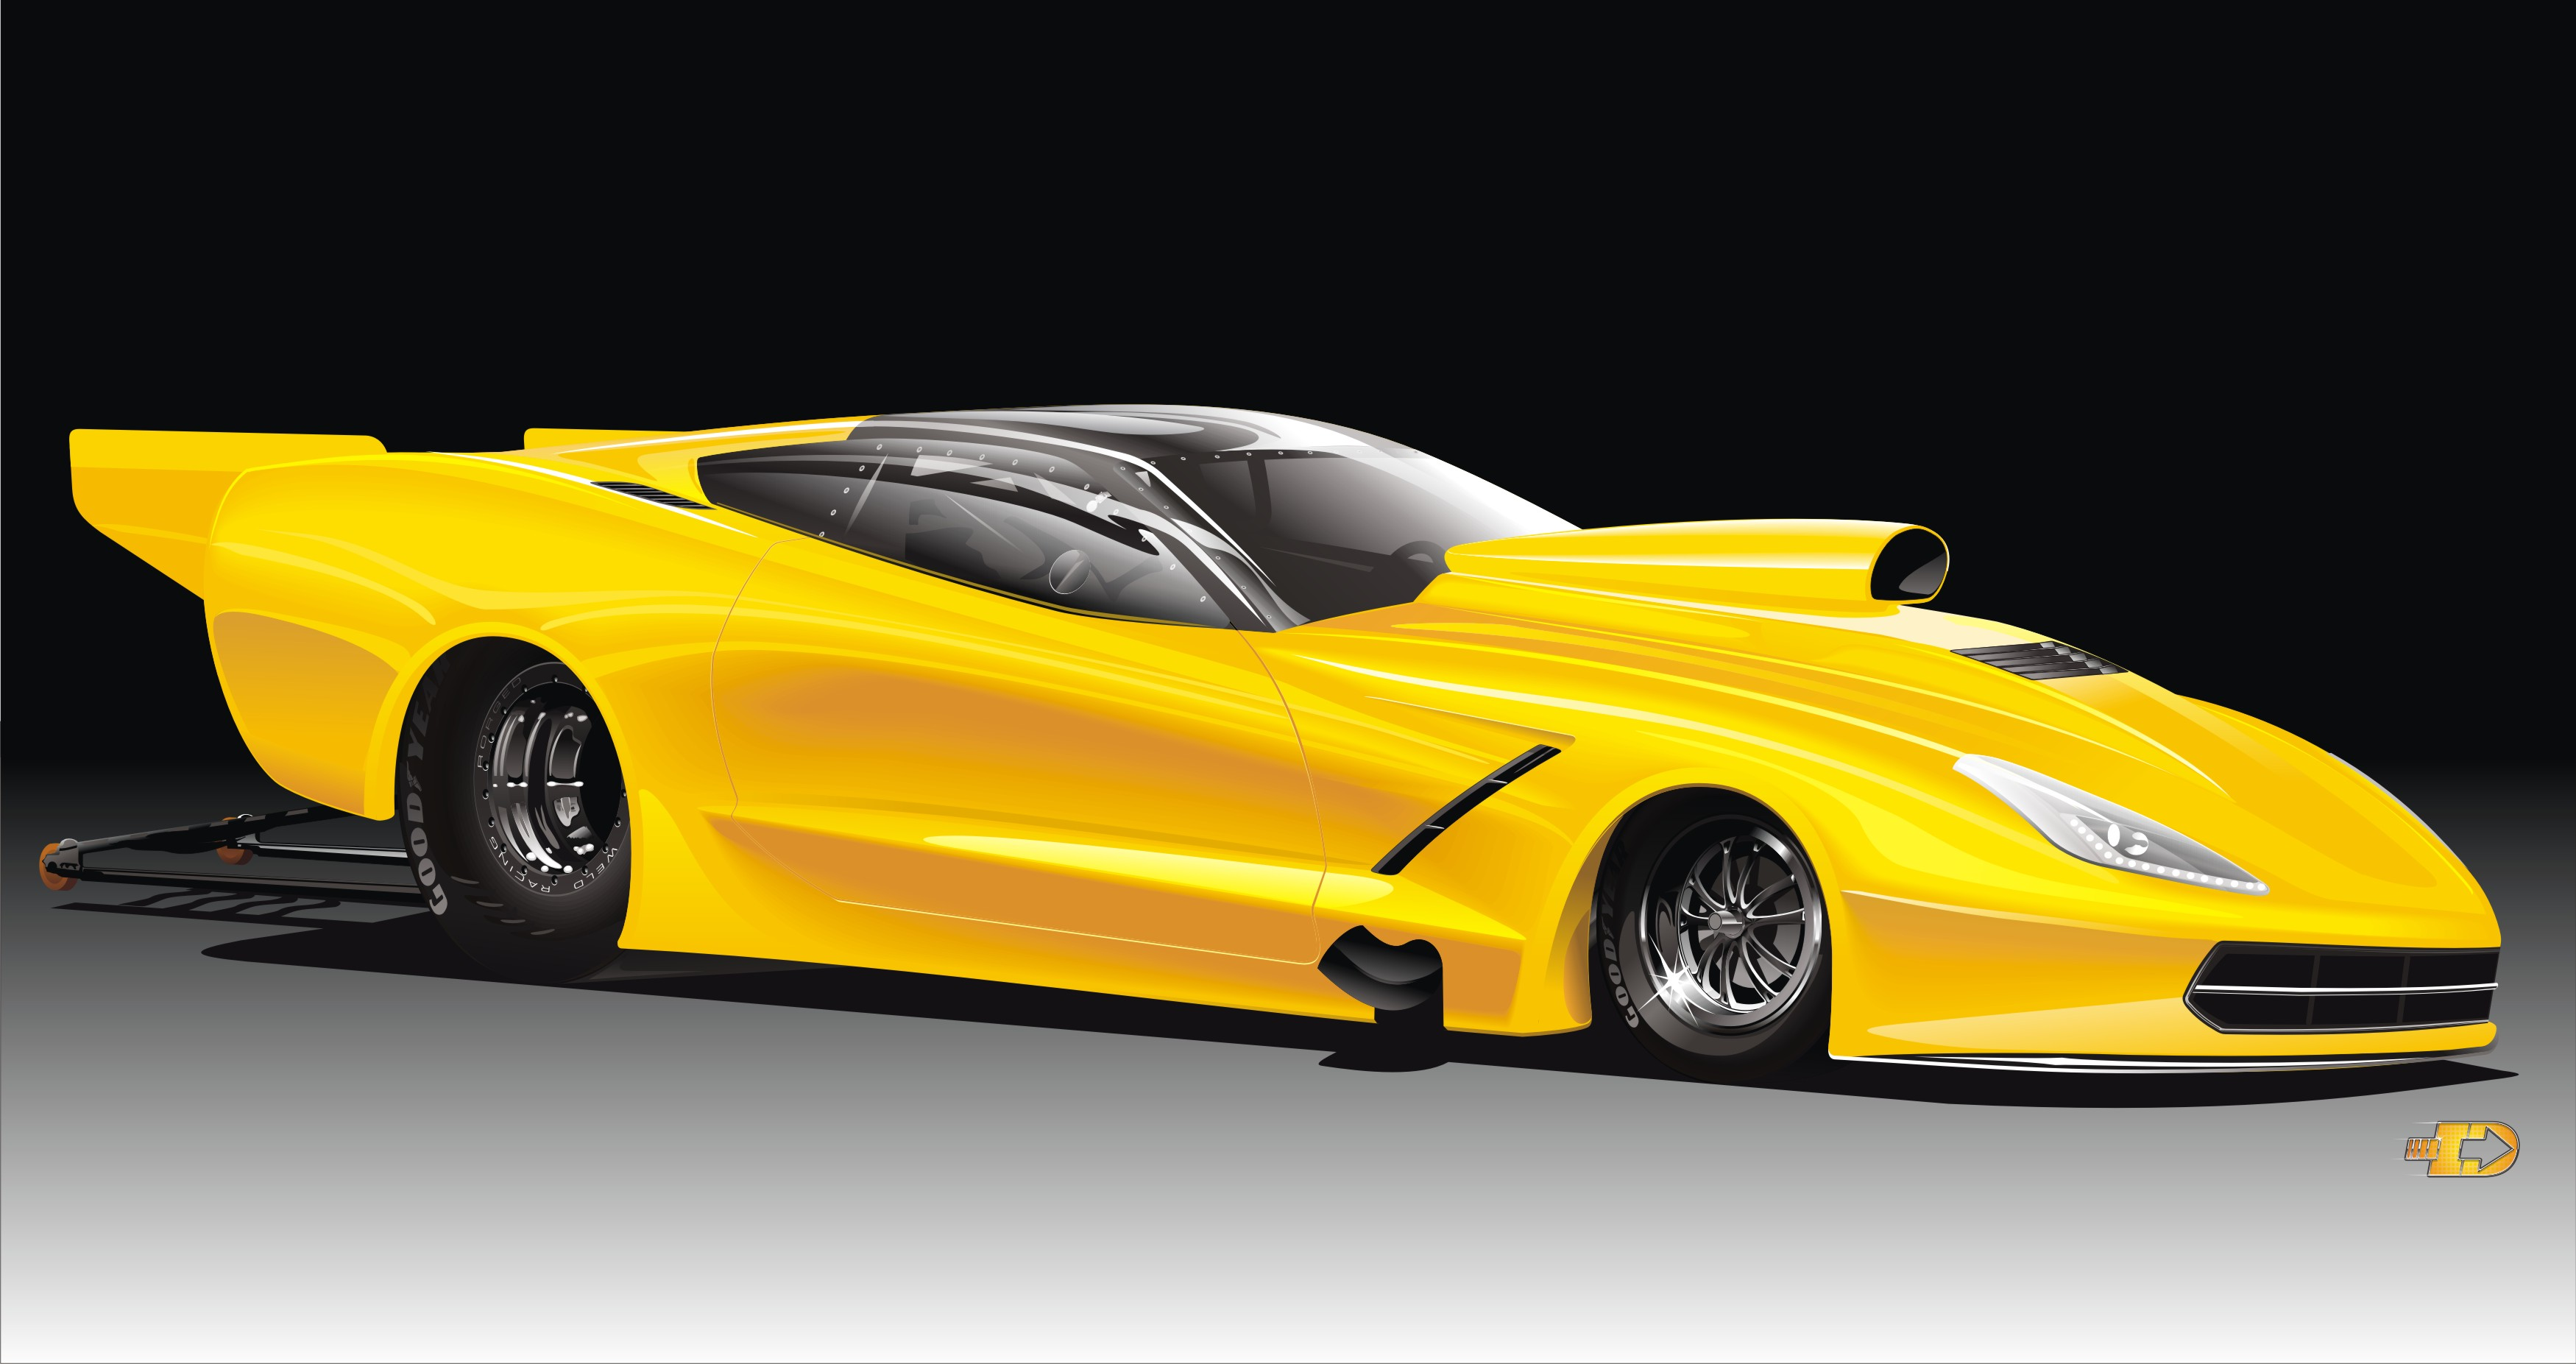 New 2014 C7 Corvette From Jerry Bickel Race Cars Competition Plus